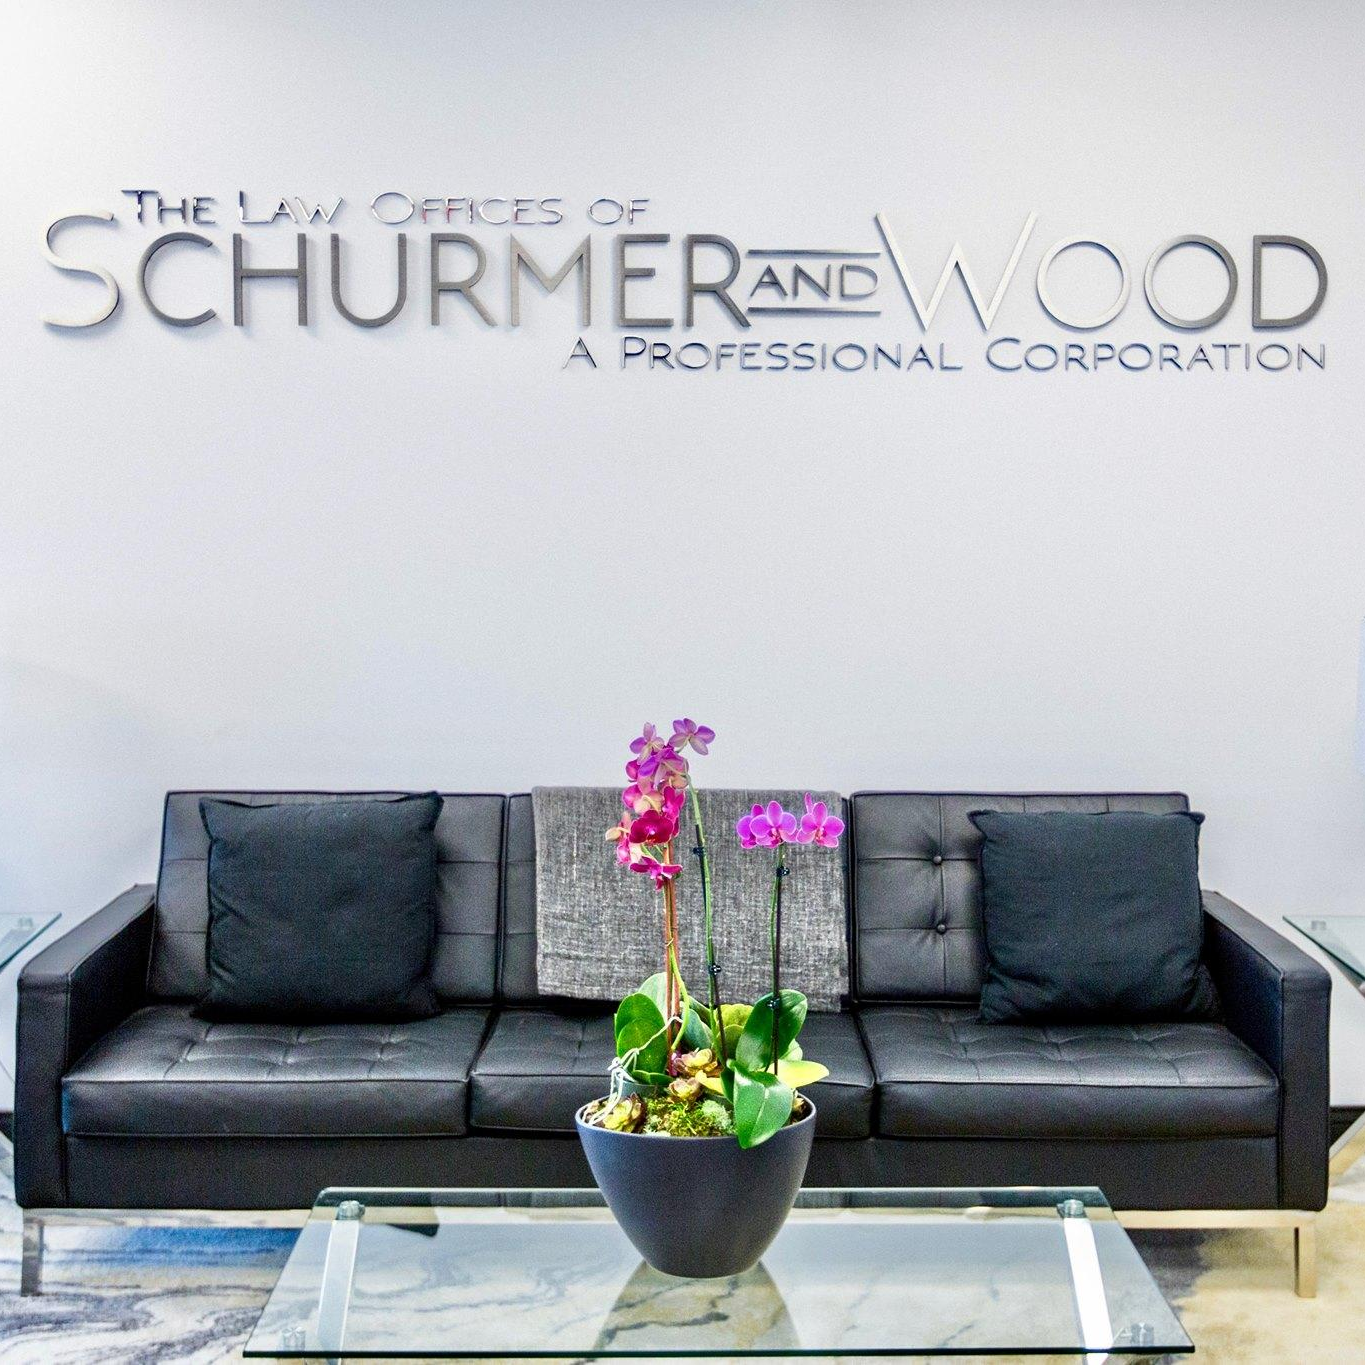 The Law Offices of Schurmer and Wood